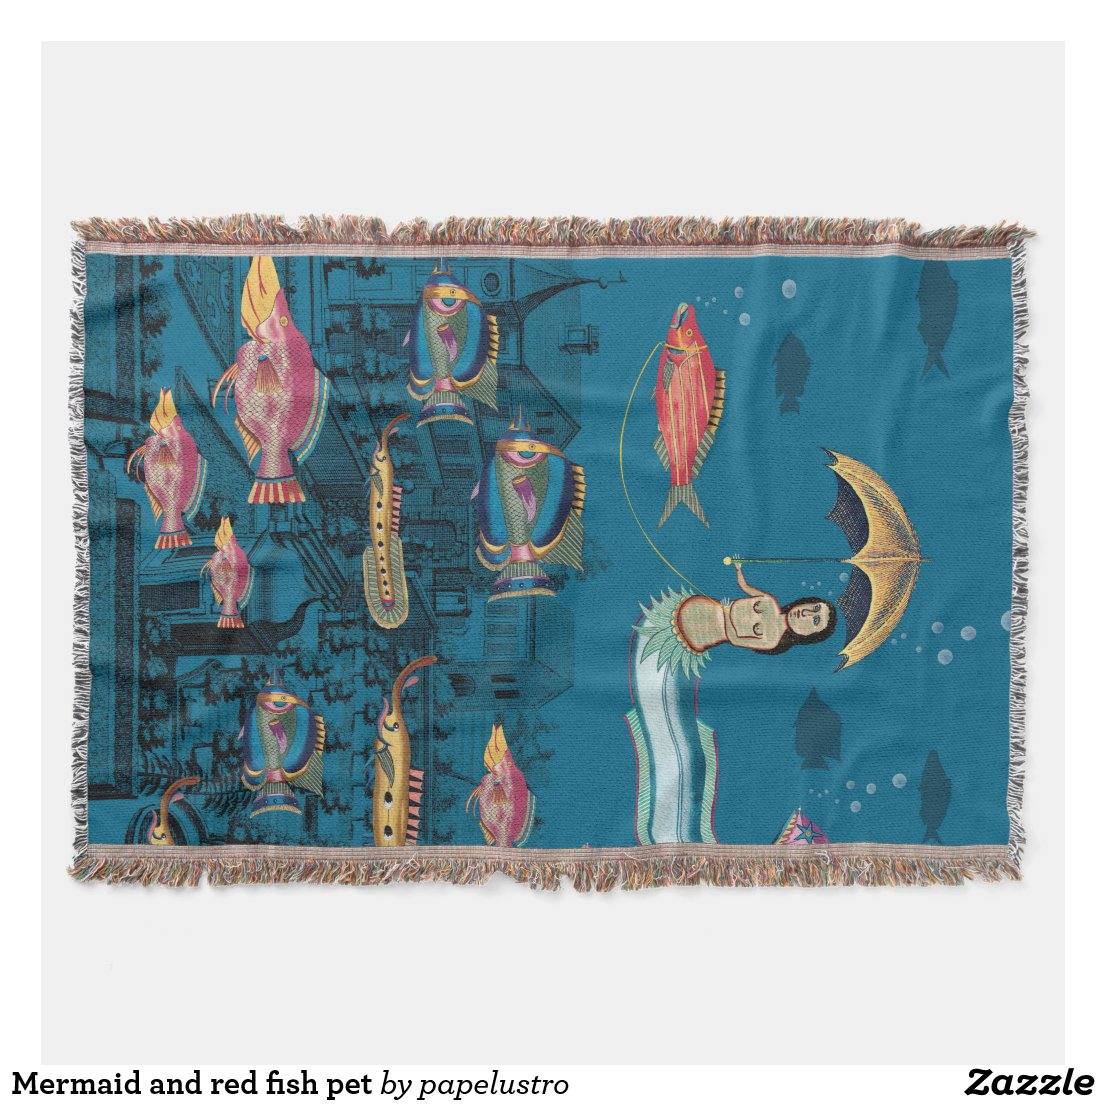 Mermaid and red fish pet throw blanket